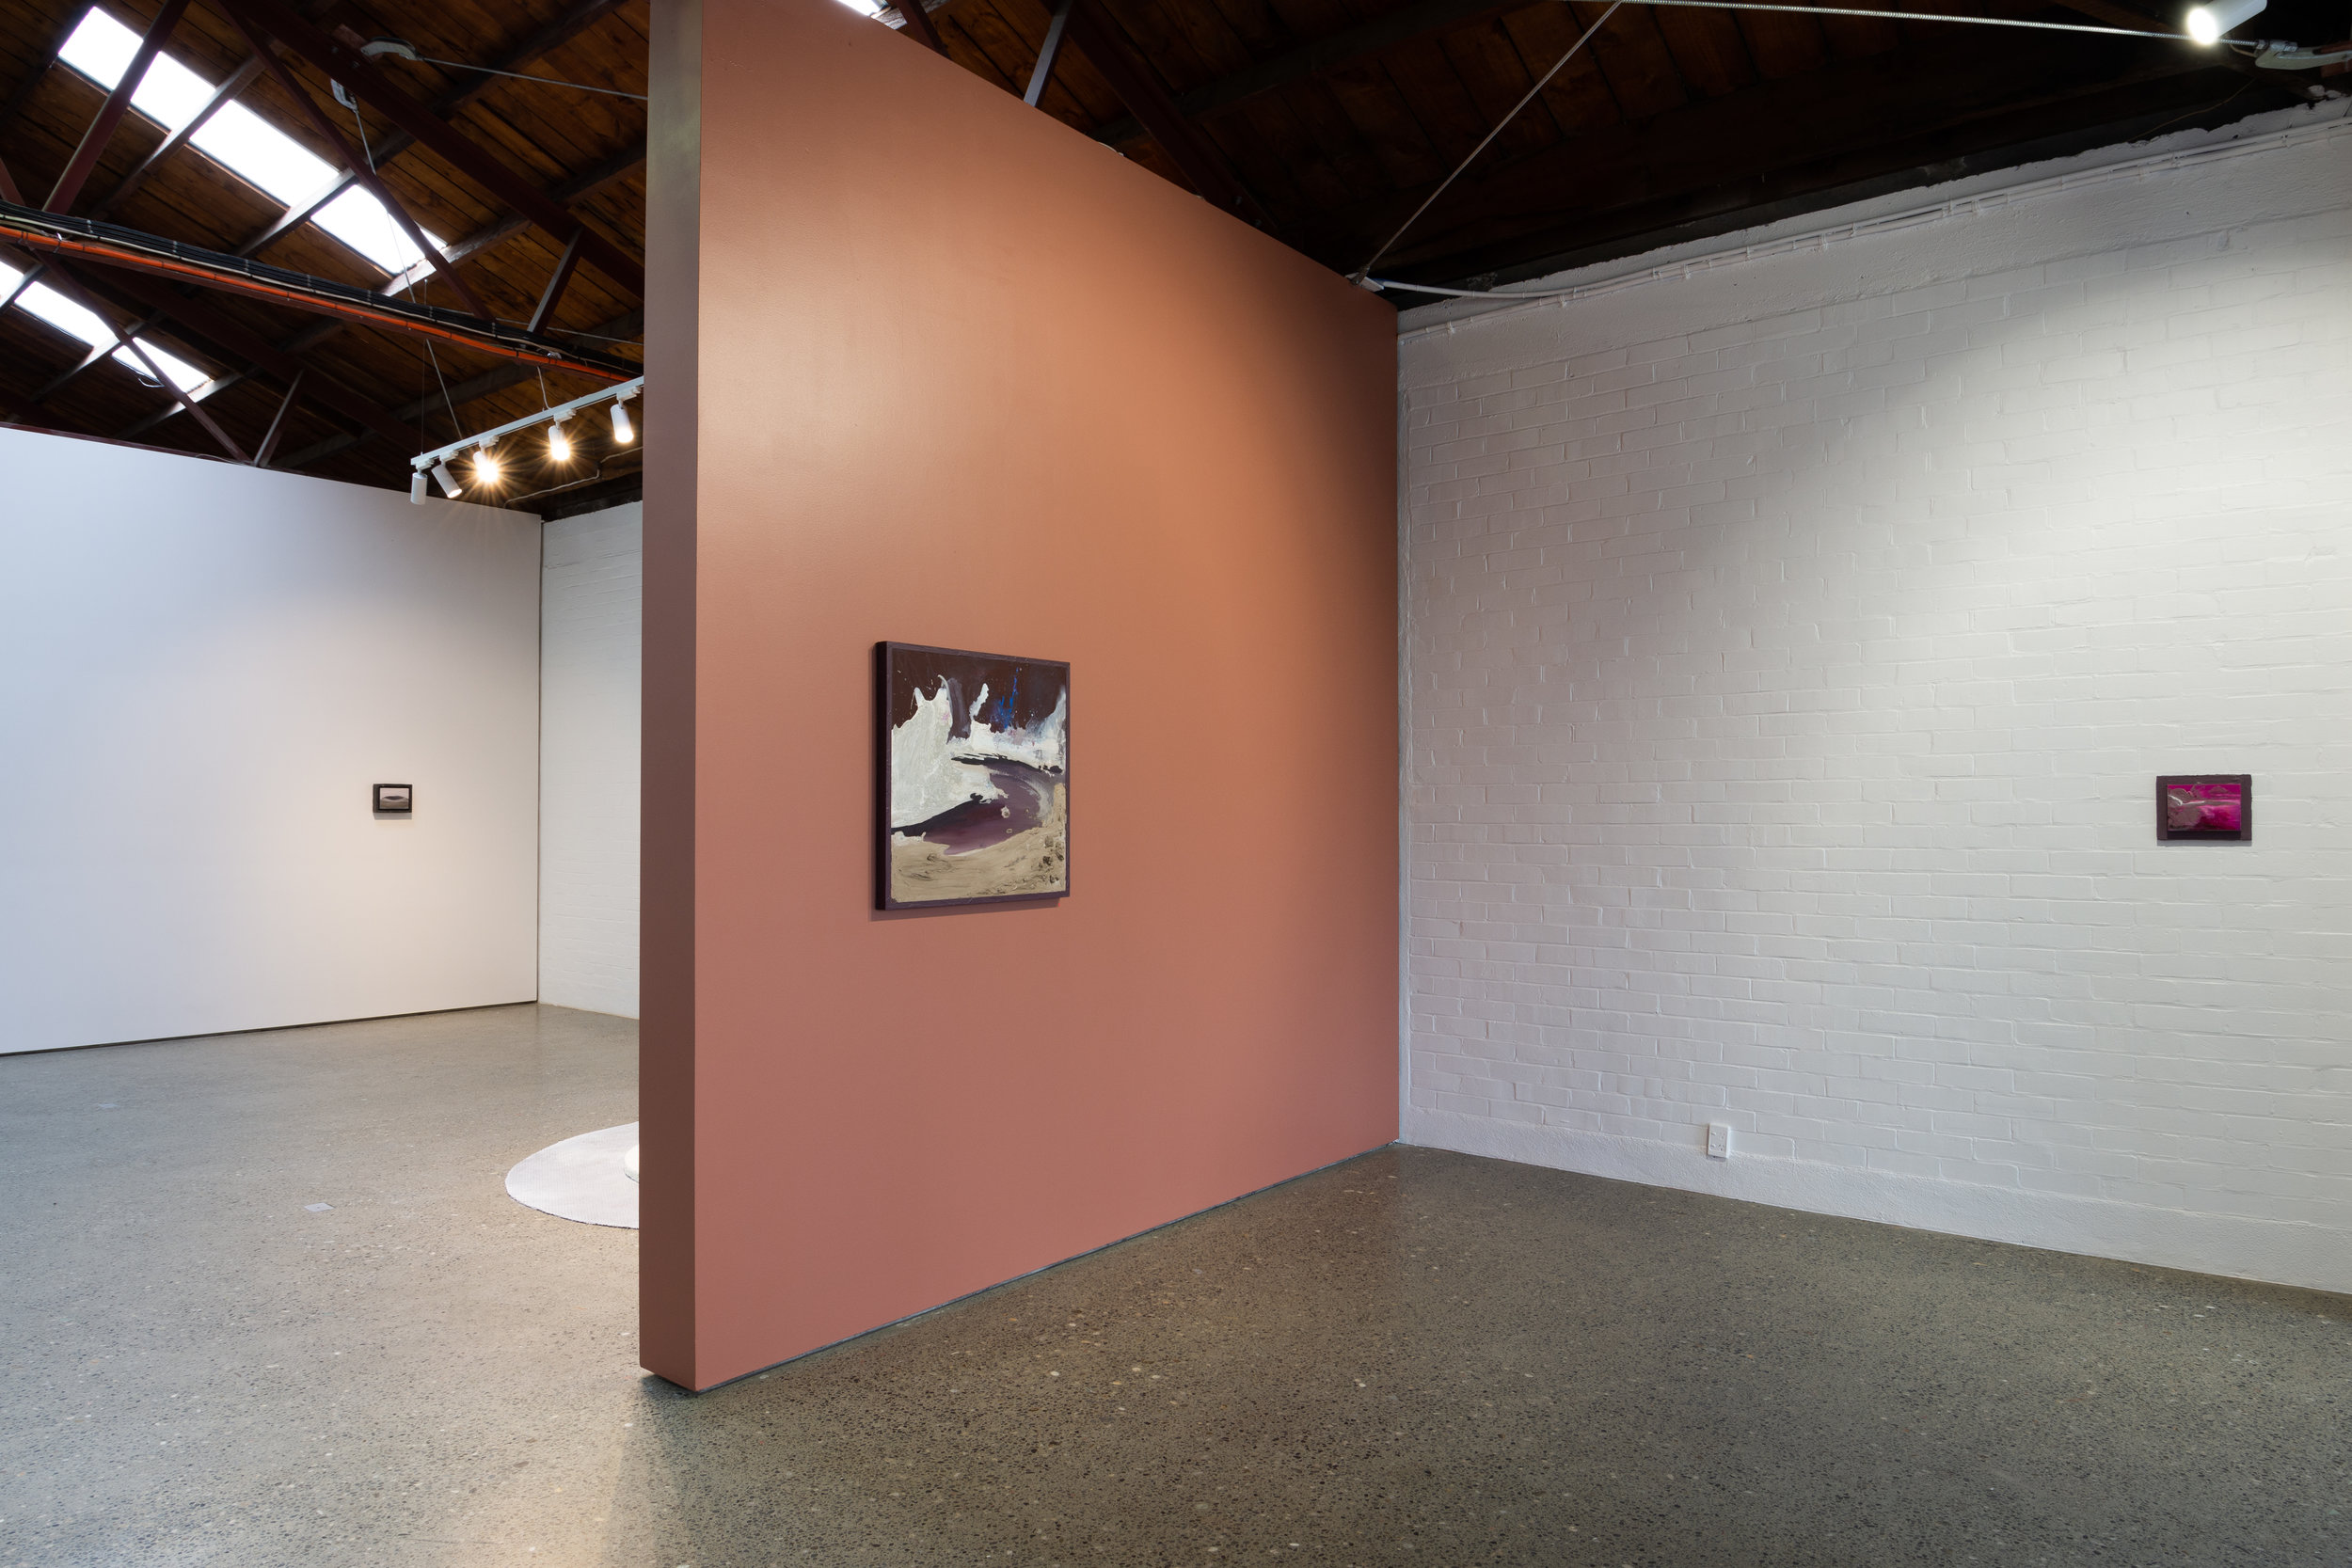 Installation shot of   Double Dribble 2   at The National, Christchurch    Zone 2-1,     acrylic and oil on board, acrylic on pine frame, 740 x 740mm, 2018 (left)    Zone 4-2   ,  acrylic and oil on board, 205 x 255mm, 2019 (right)  Photo credit: Mitchell Bright